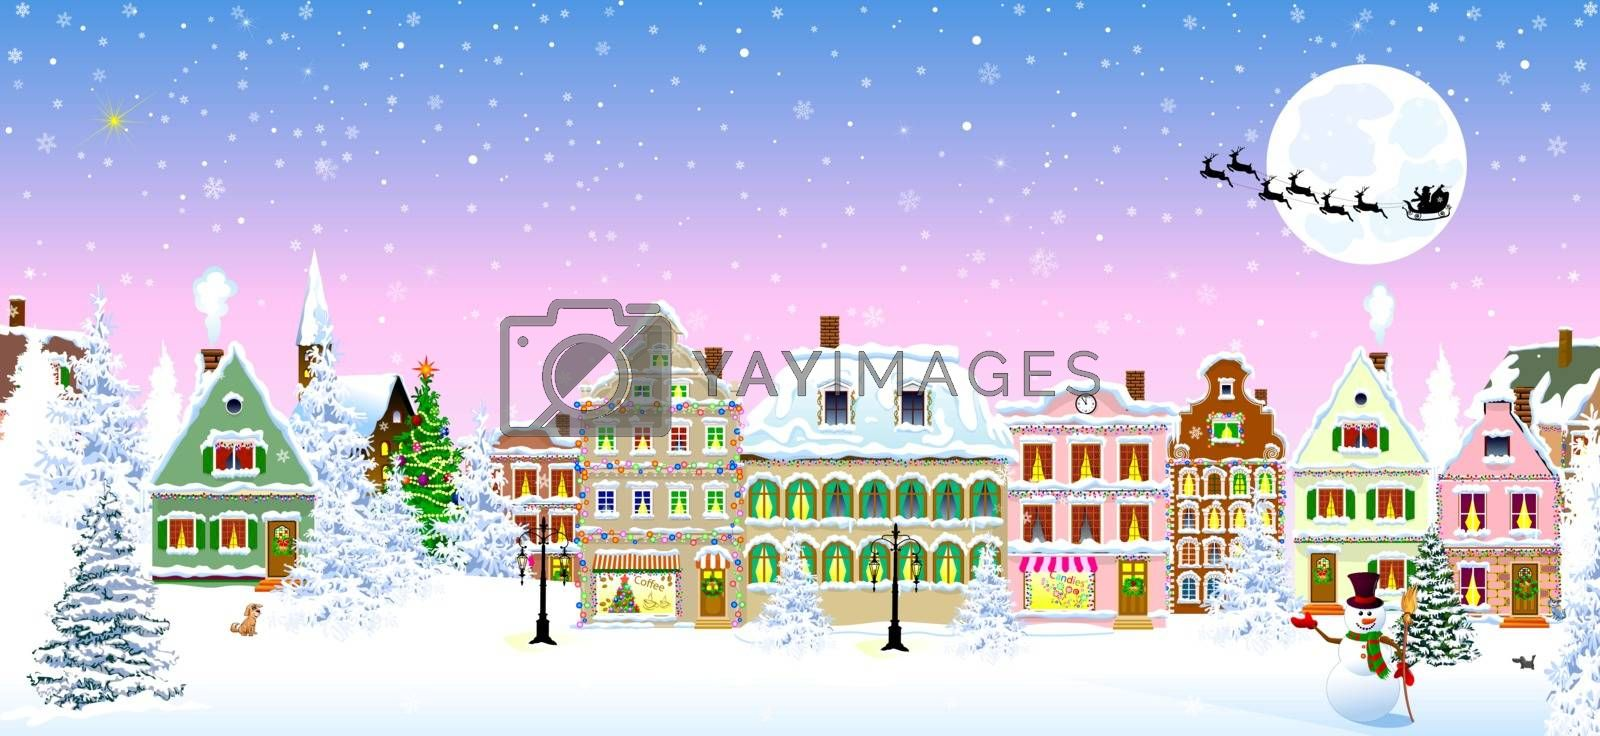 Houses, city, church, trees. Winter city landscape. Christmas Eve night. Snowflakes in the night sky. Silhouette of Santa Claus on a sleigh with deers on the background of the moon. Christmas winter night scene.